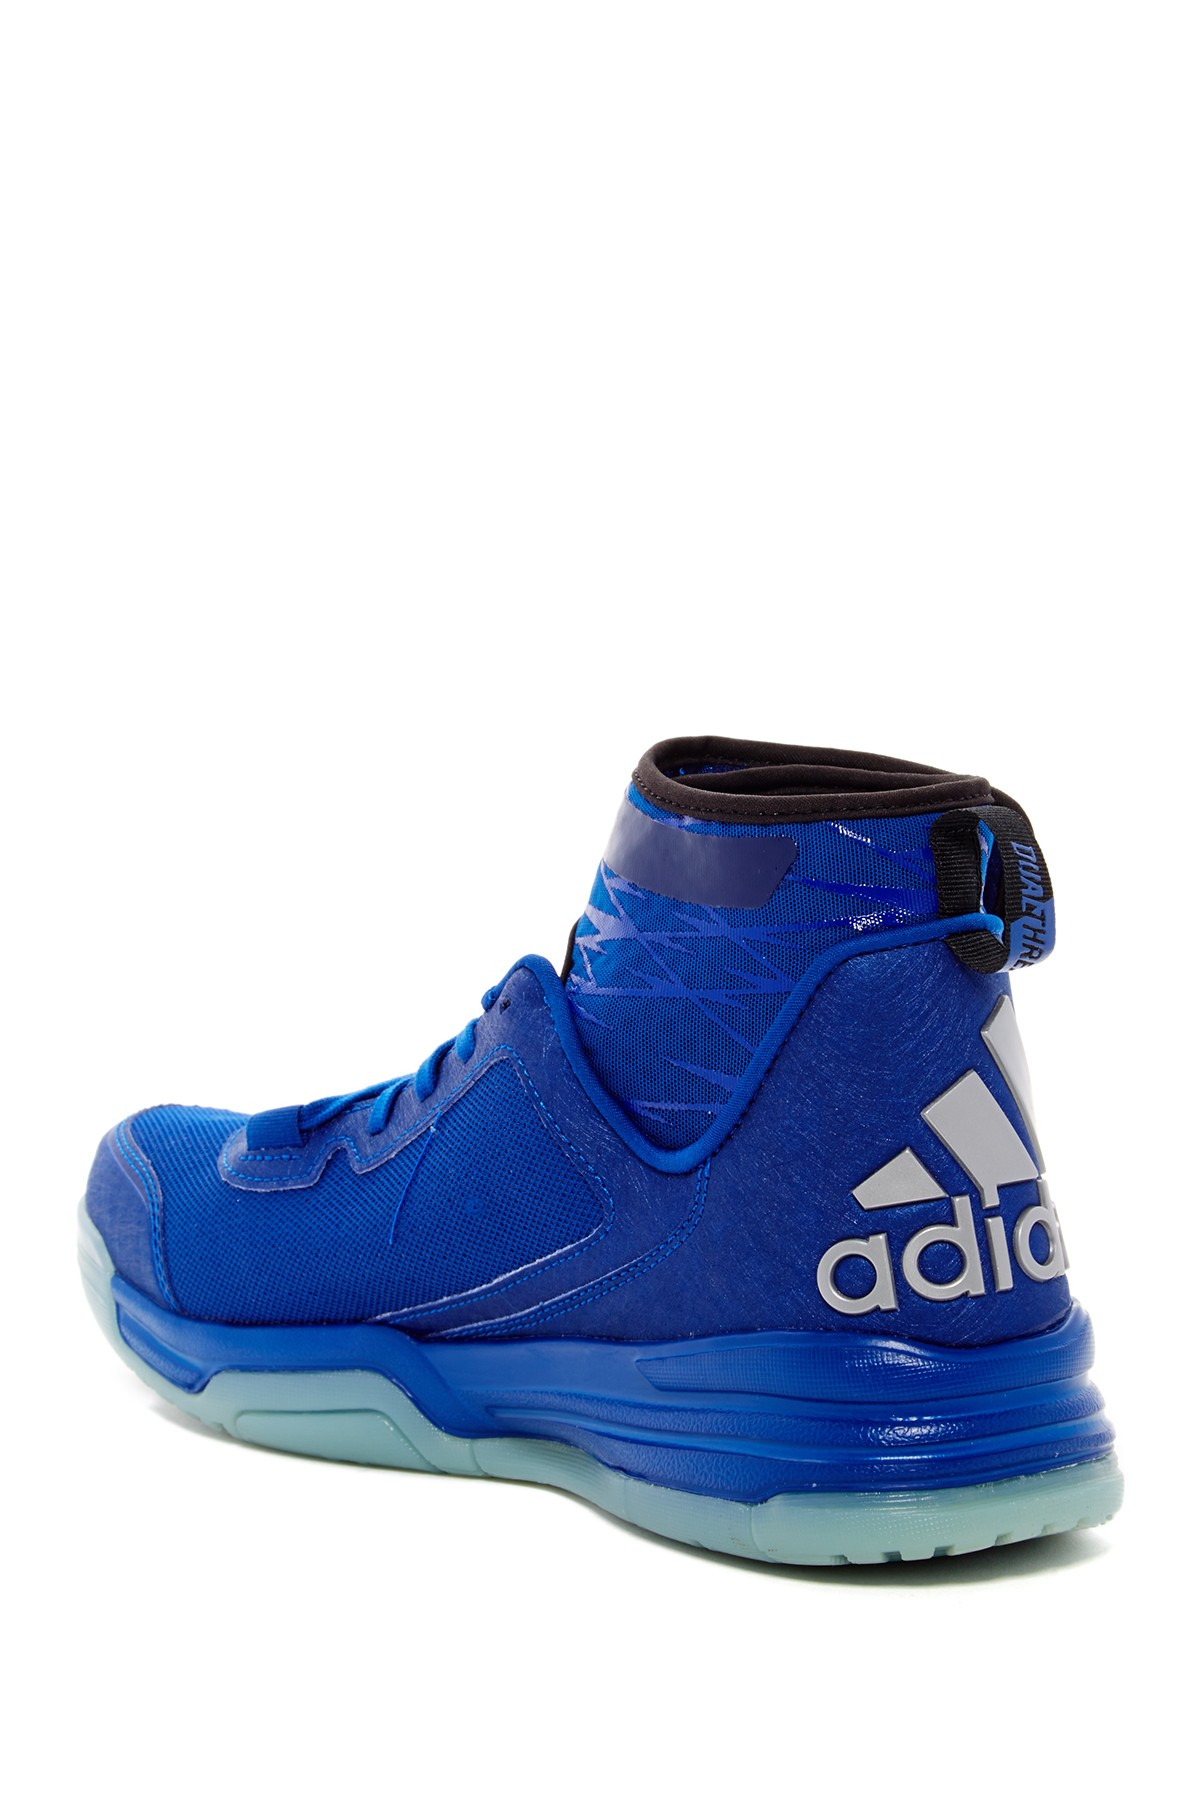 Adidas Shoes Nordstrom